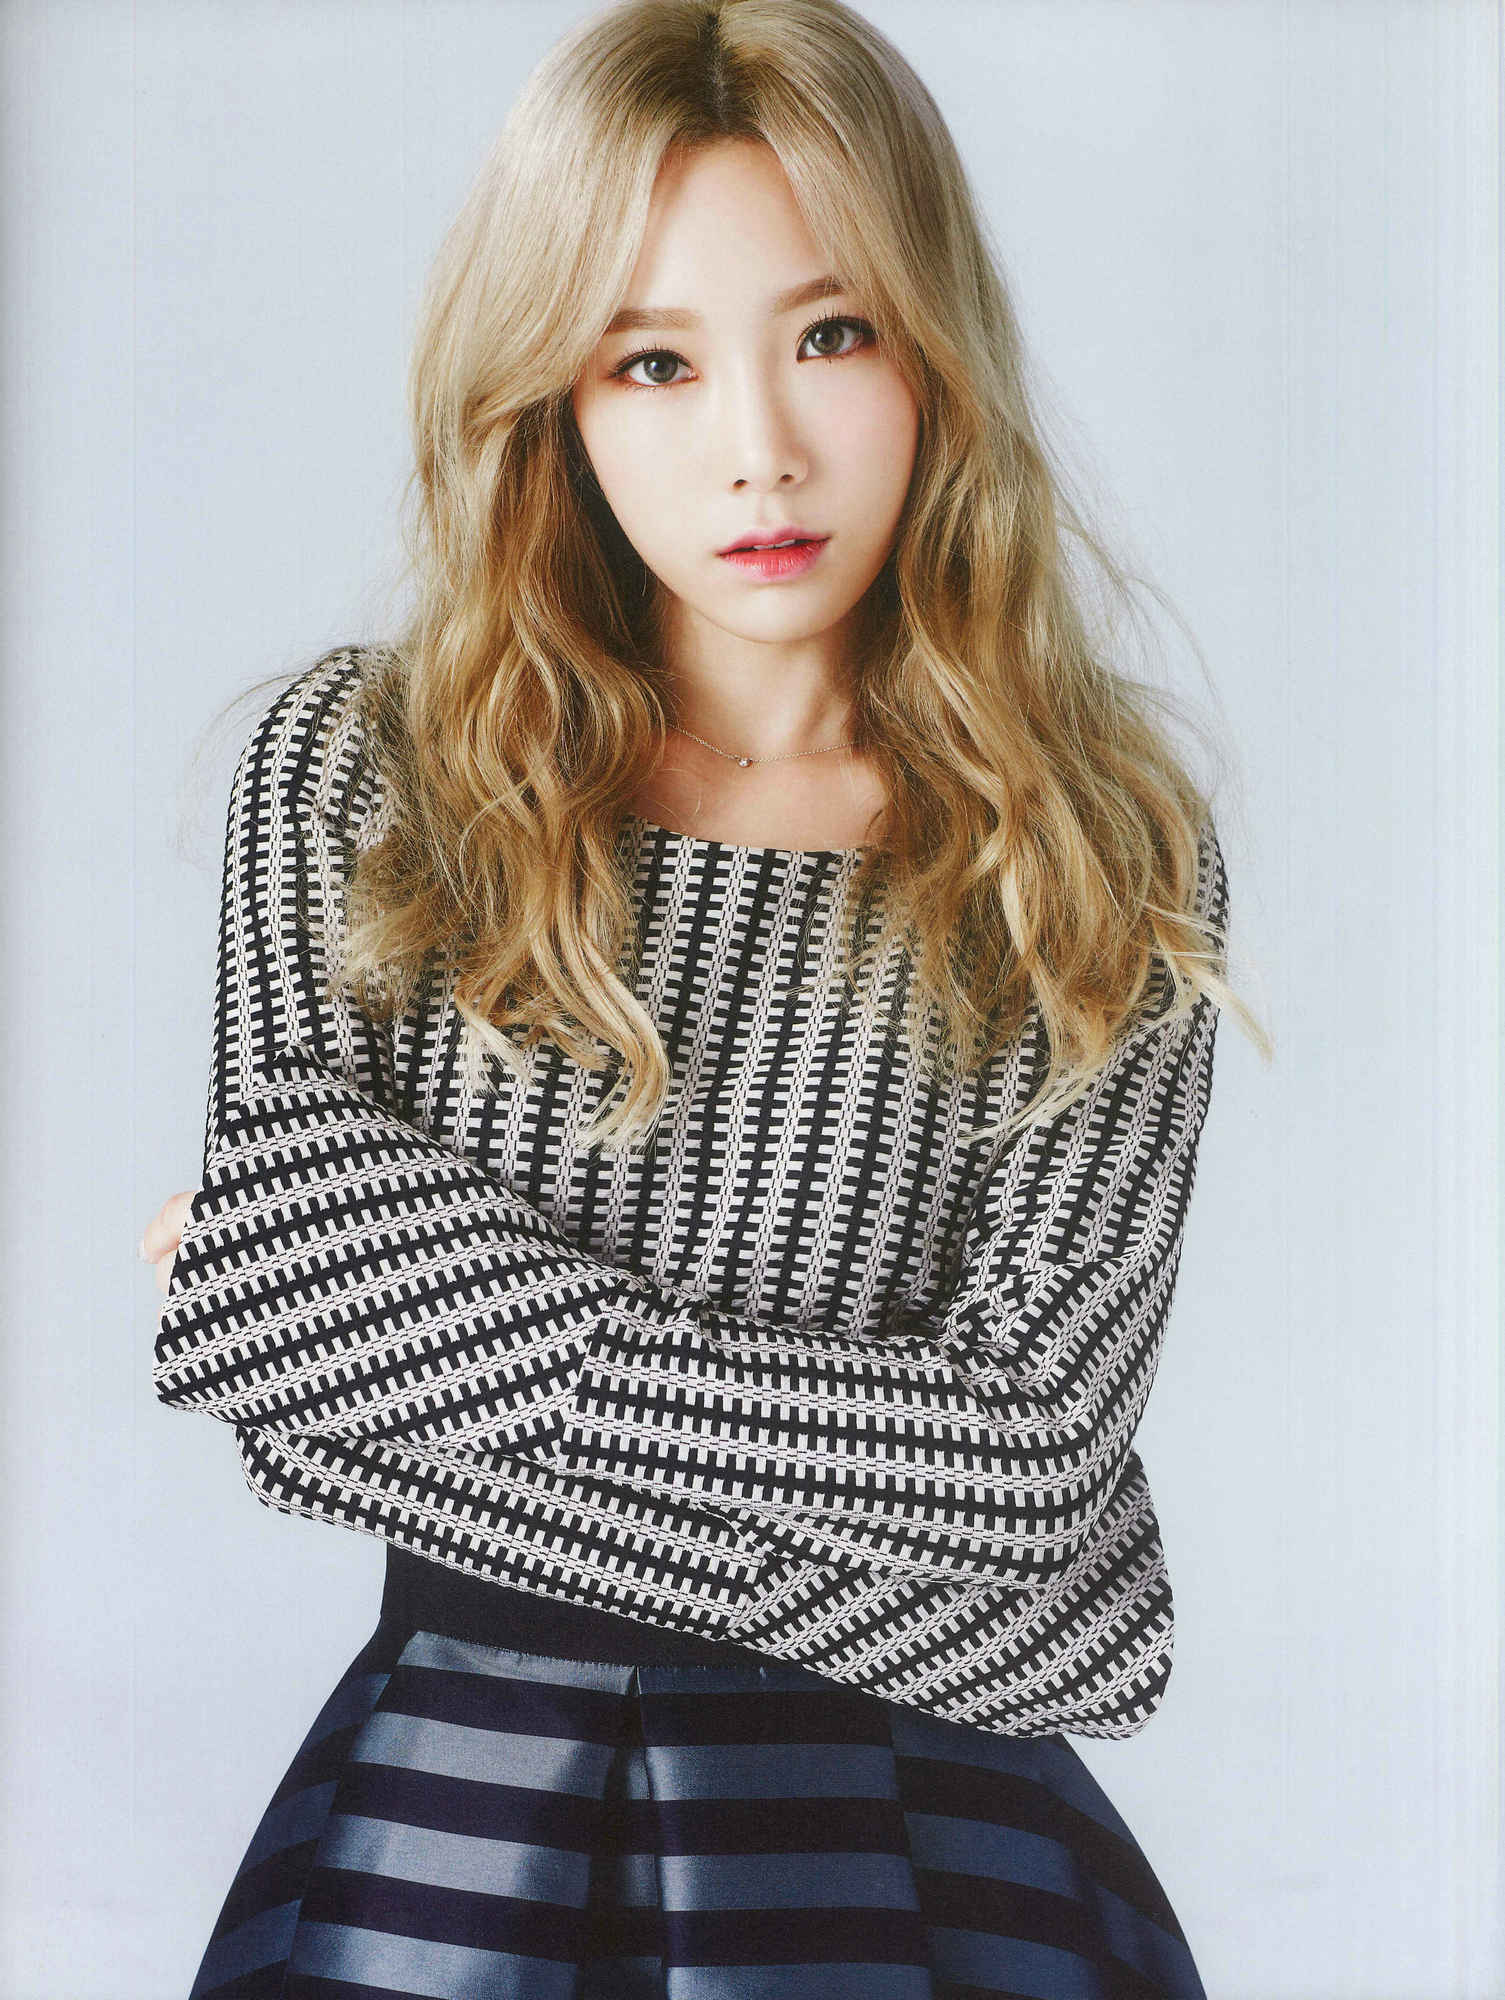 Nice wallpapers Taeyeon 1505x2000px